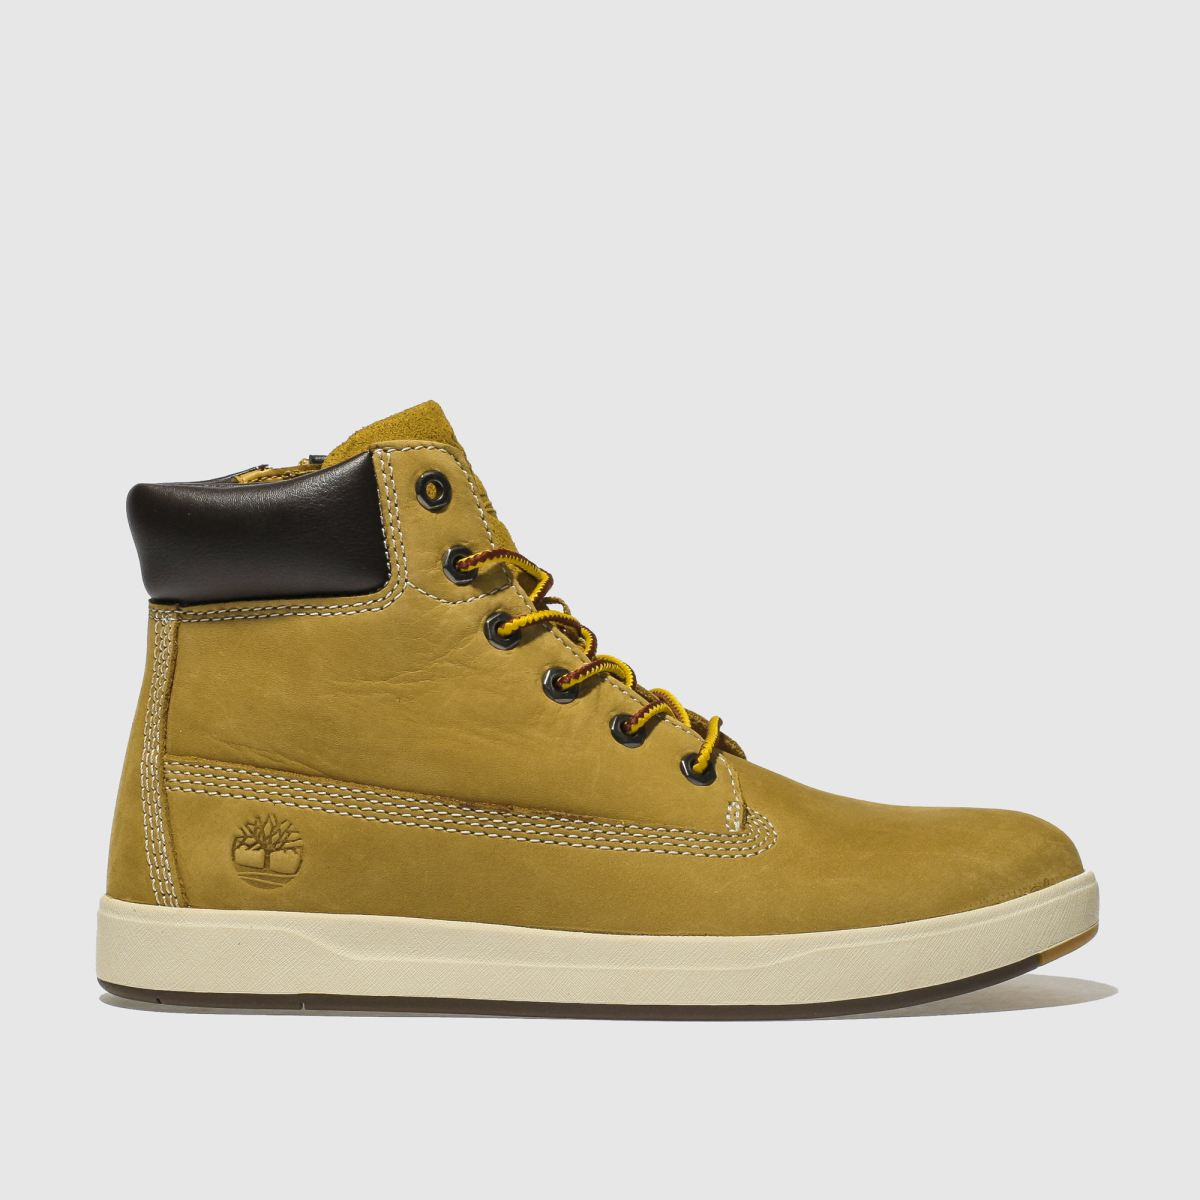 Timberland Natural Davis Square 6 Inch Boys Youth Youth